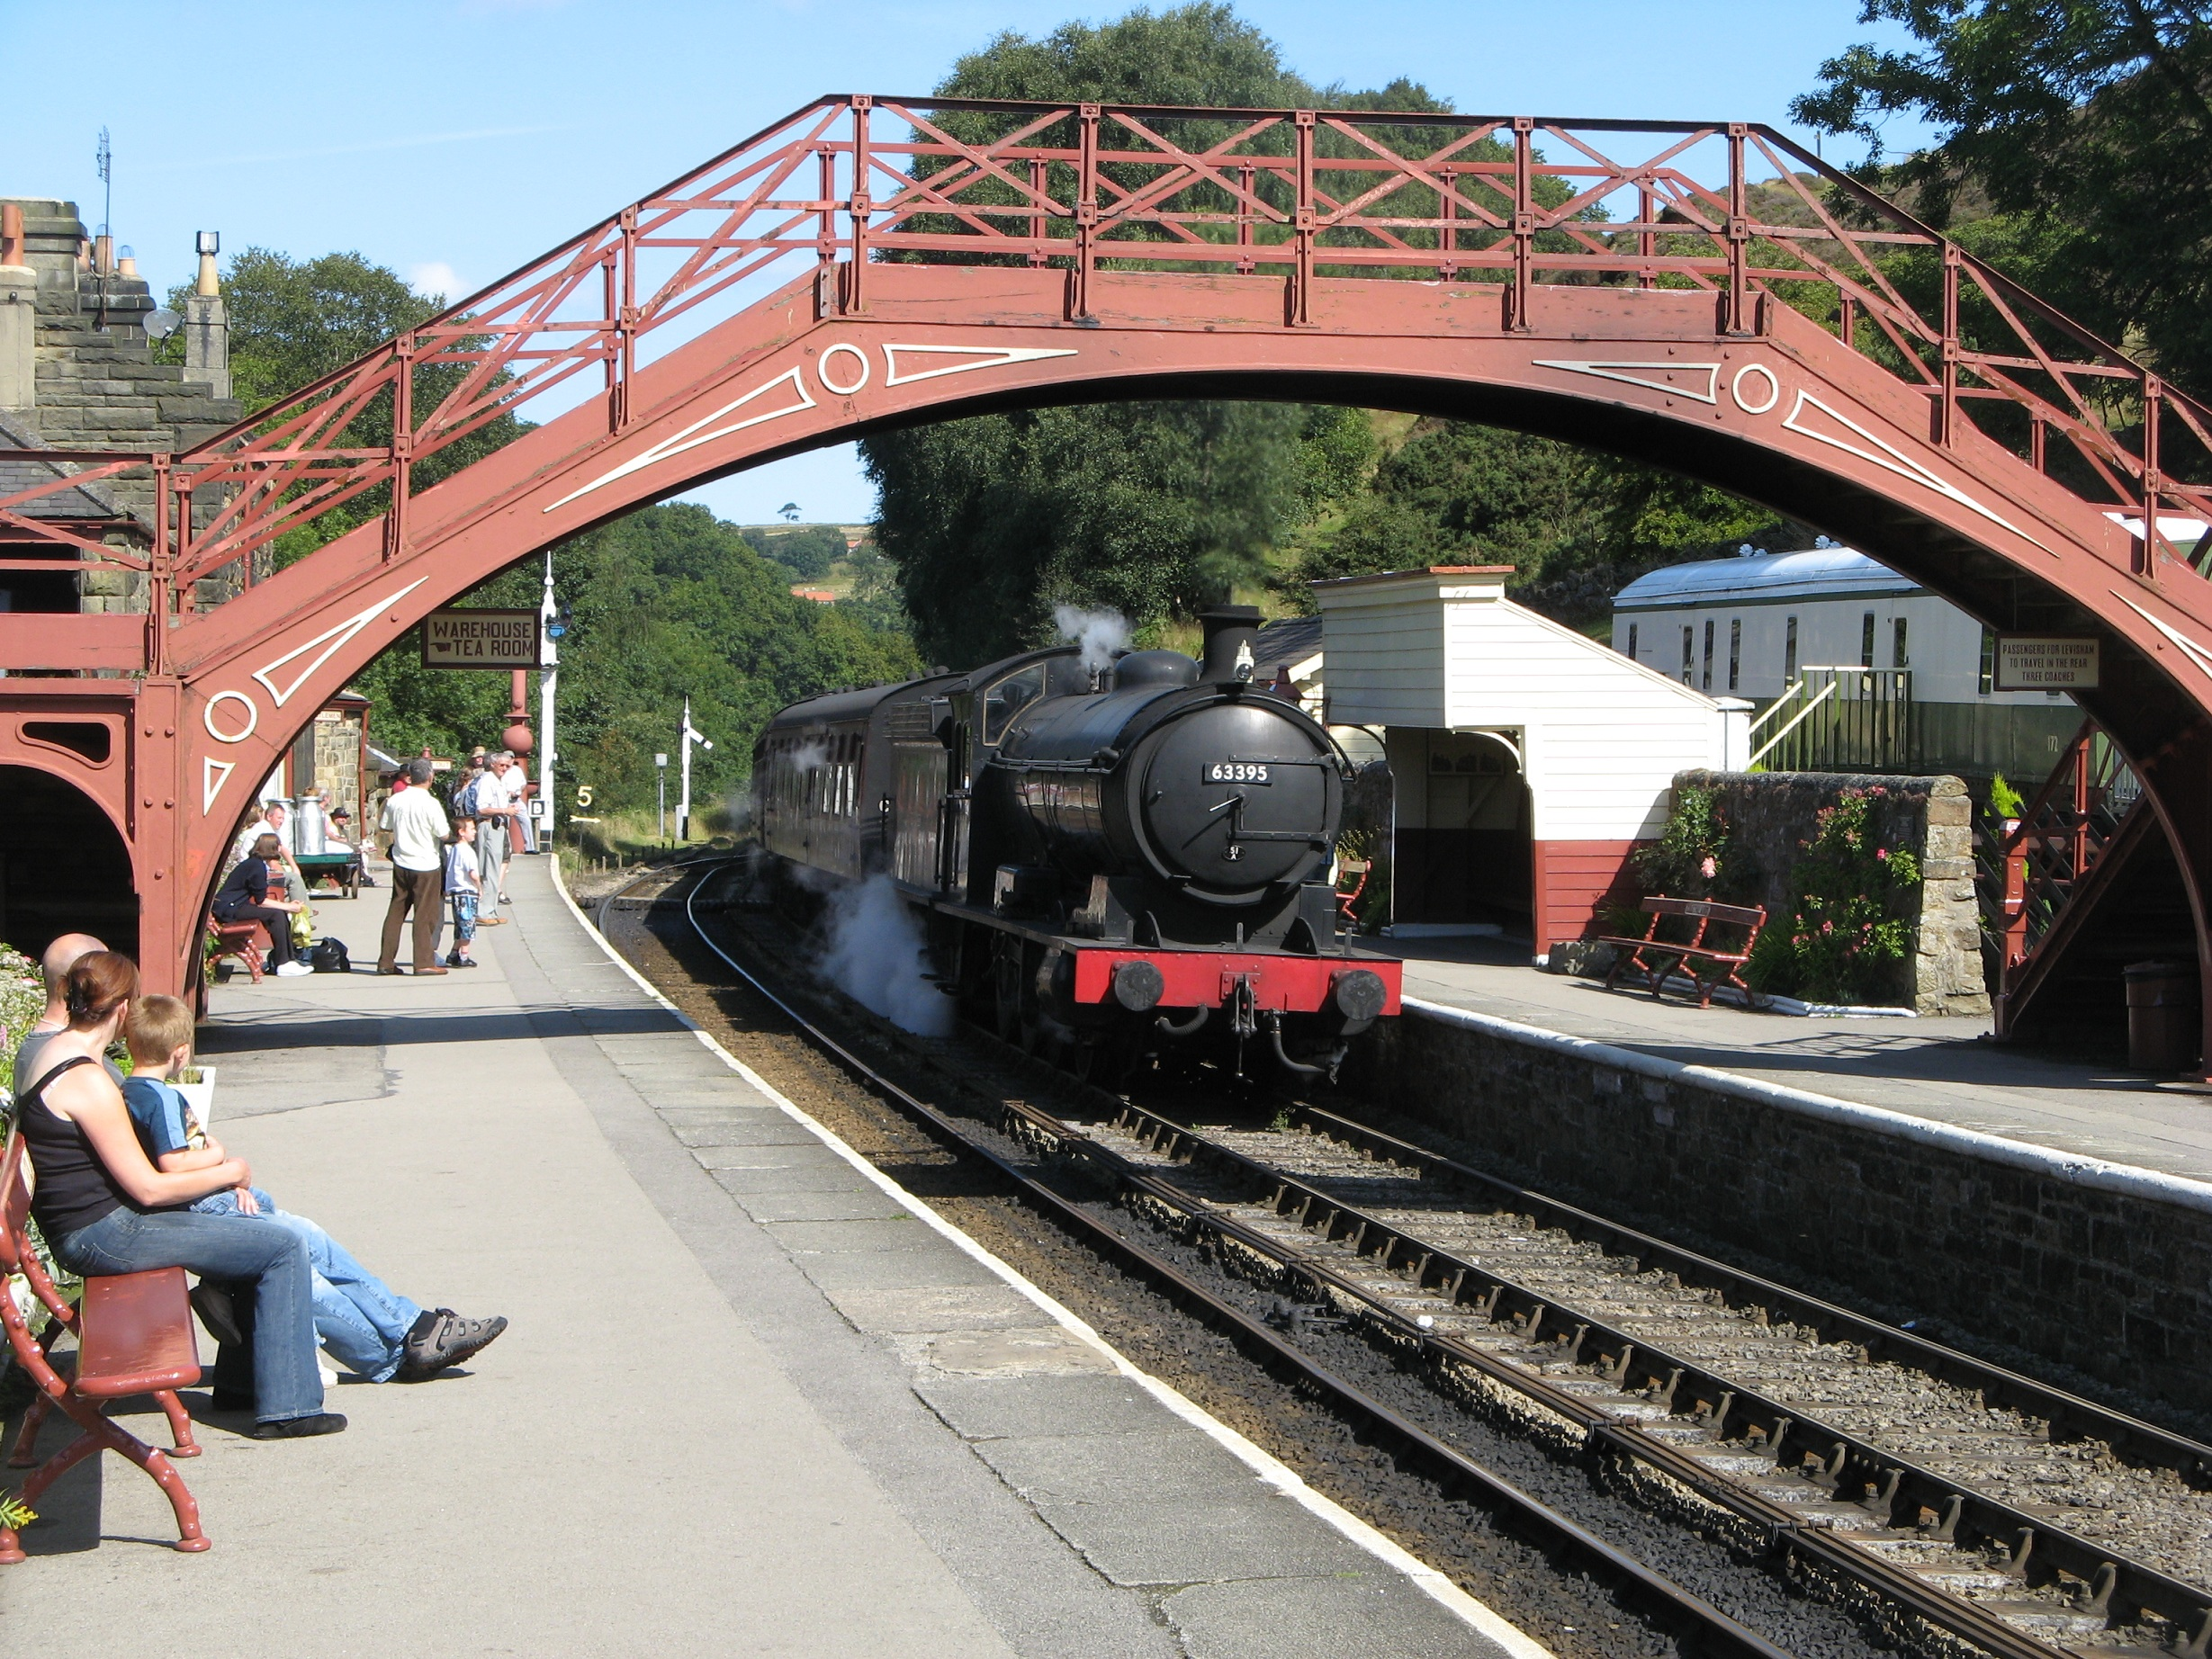 Back to the 70's with Moors Railway